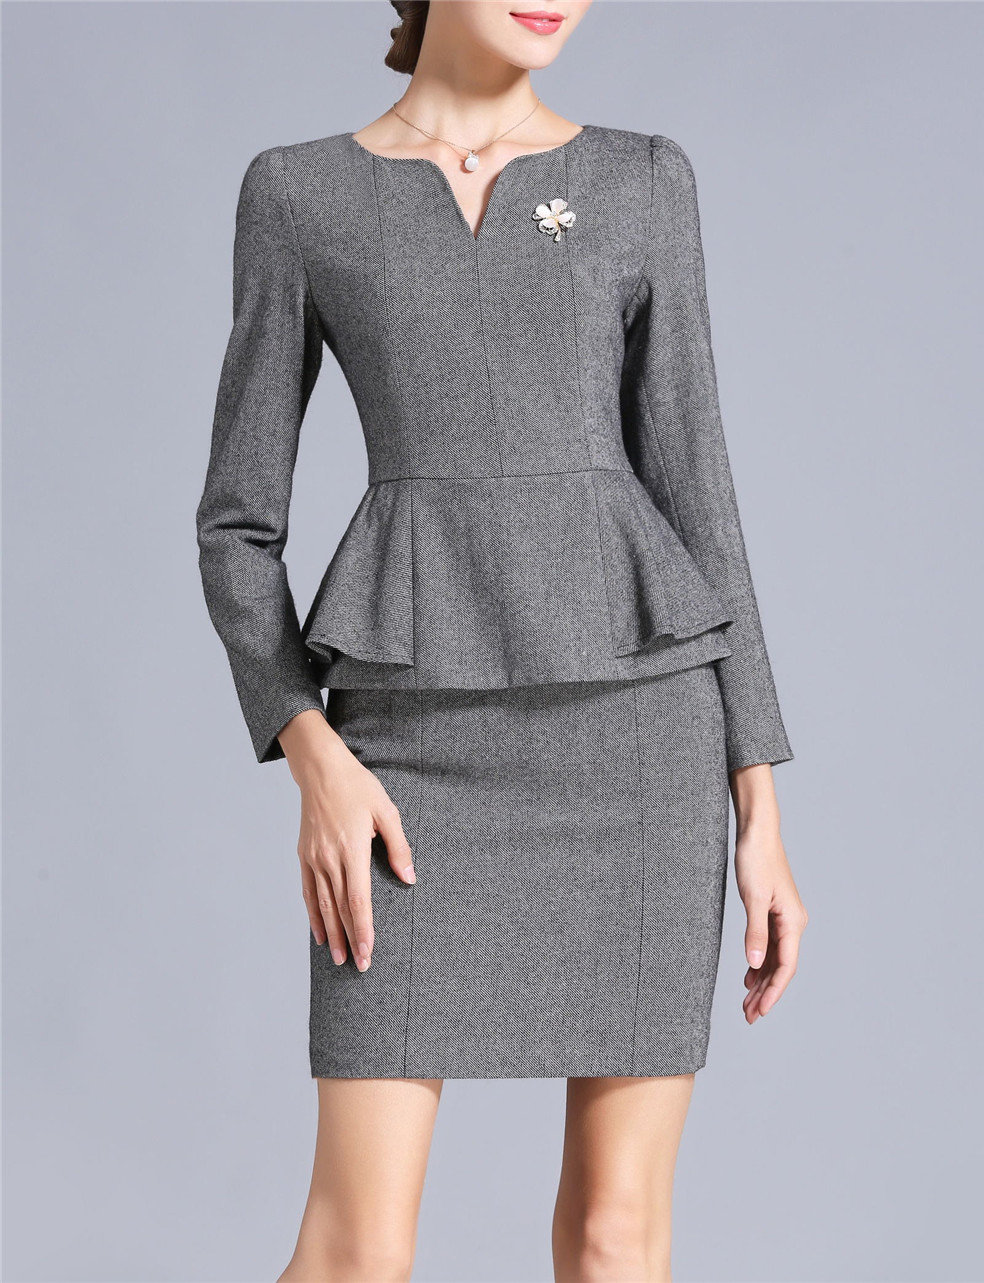 Made to Measure Business Attire Women Autumn Dress